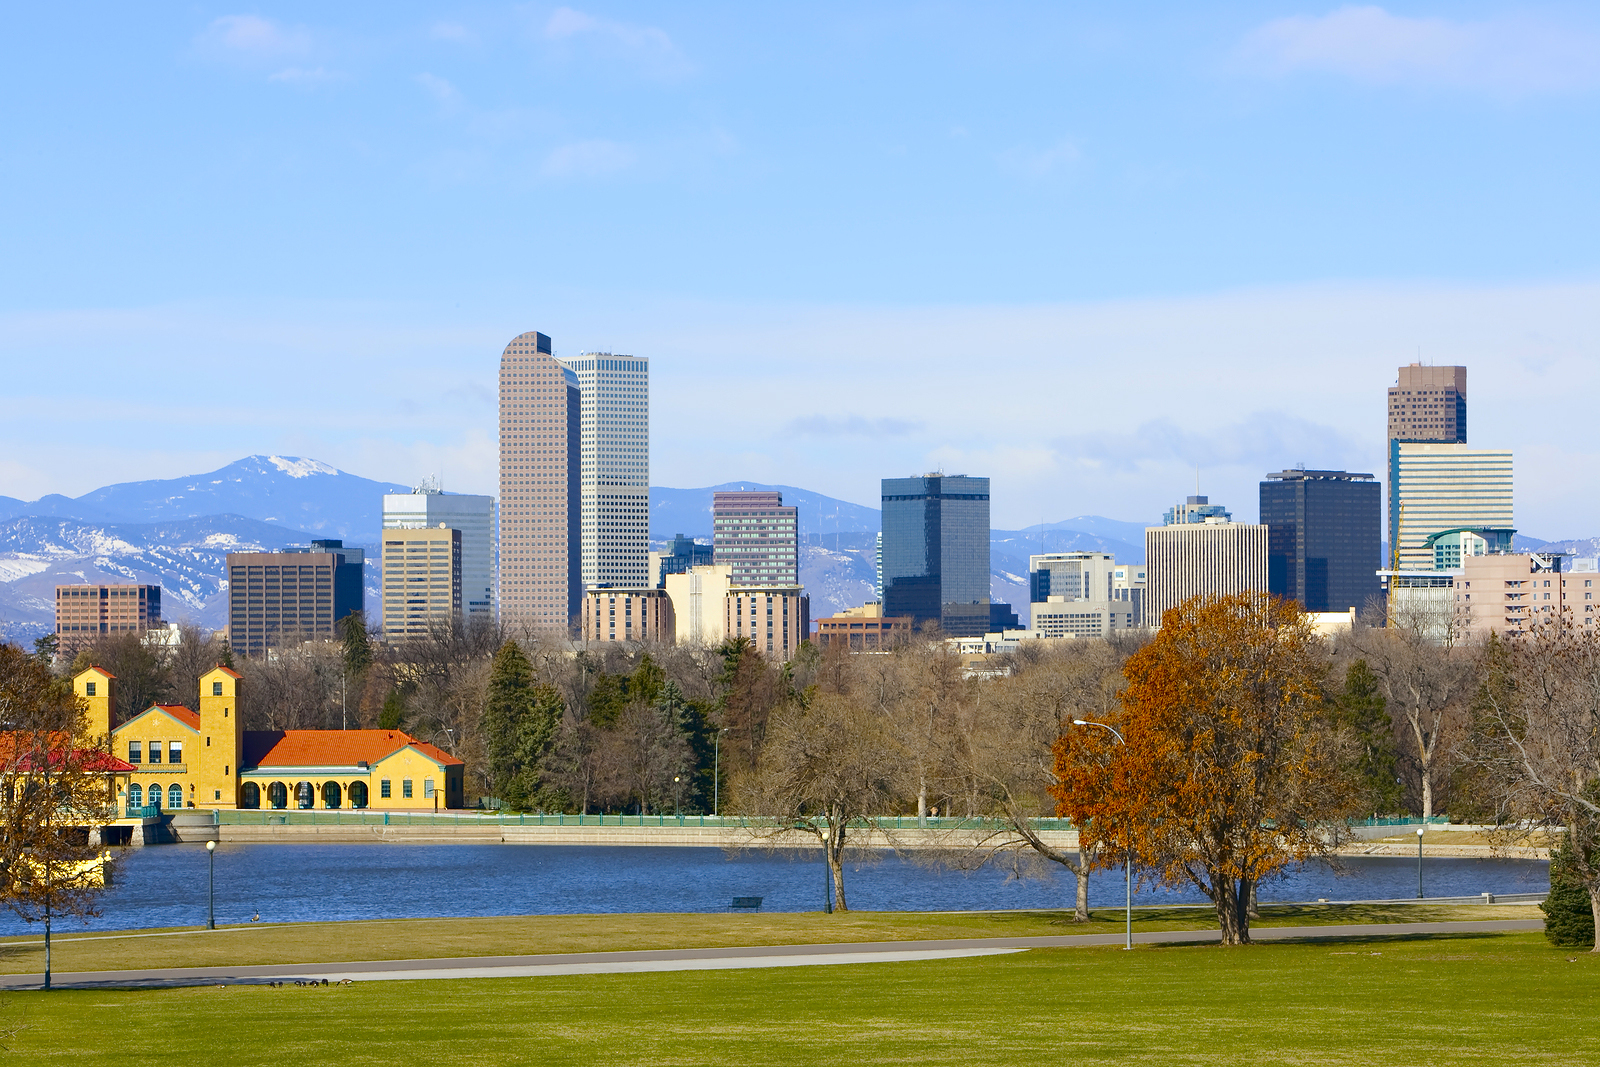 The Denver Area offers a diverse an active lifestyle for baby boomers looking to retire in Colorado.